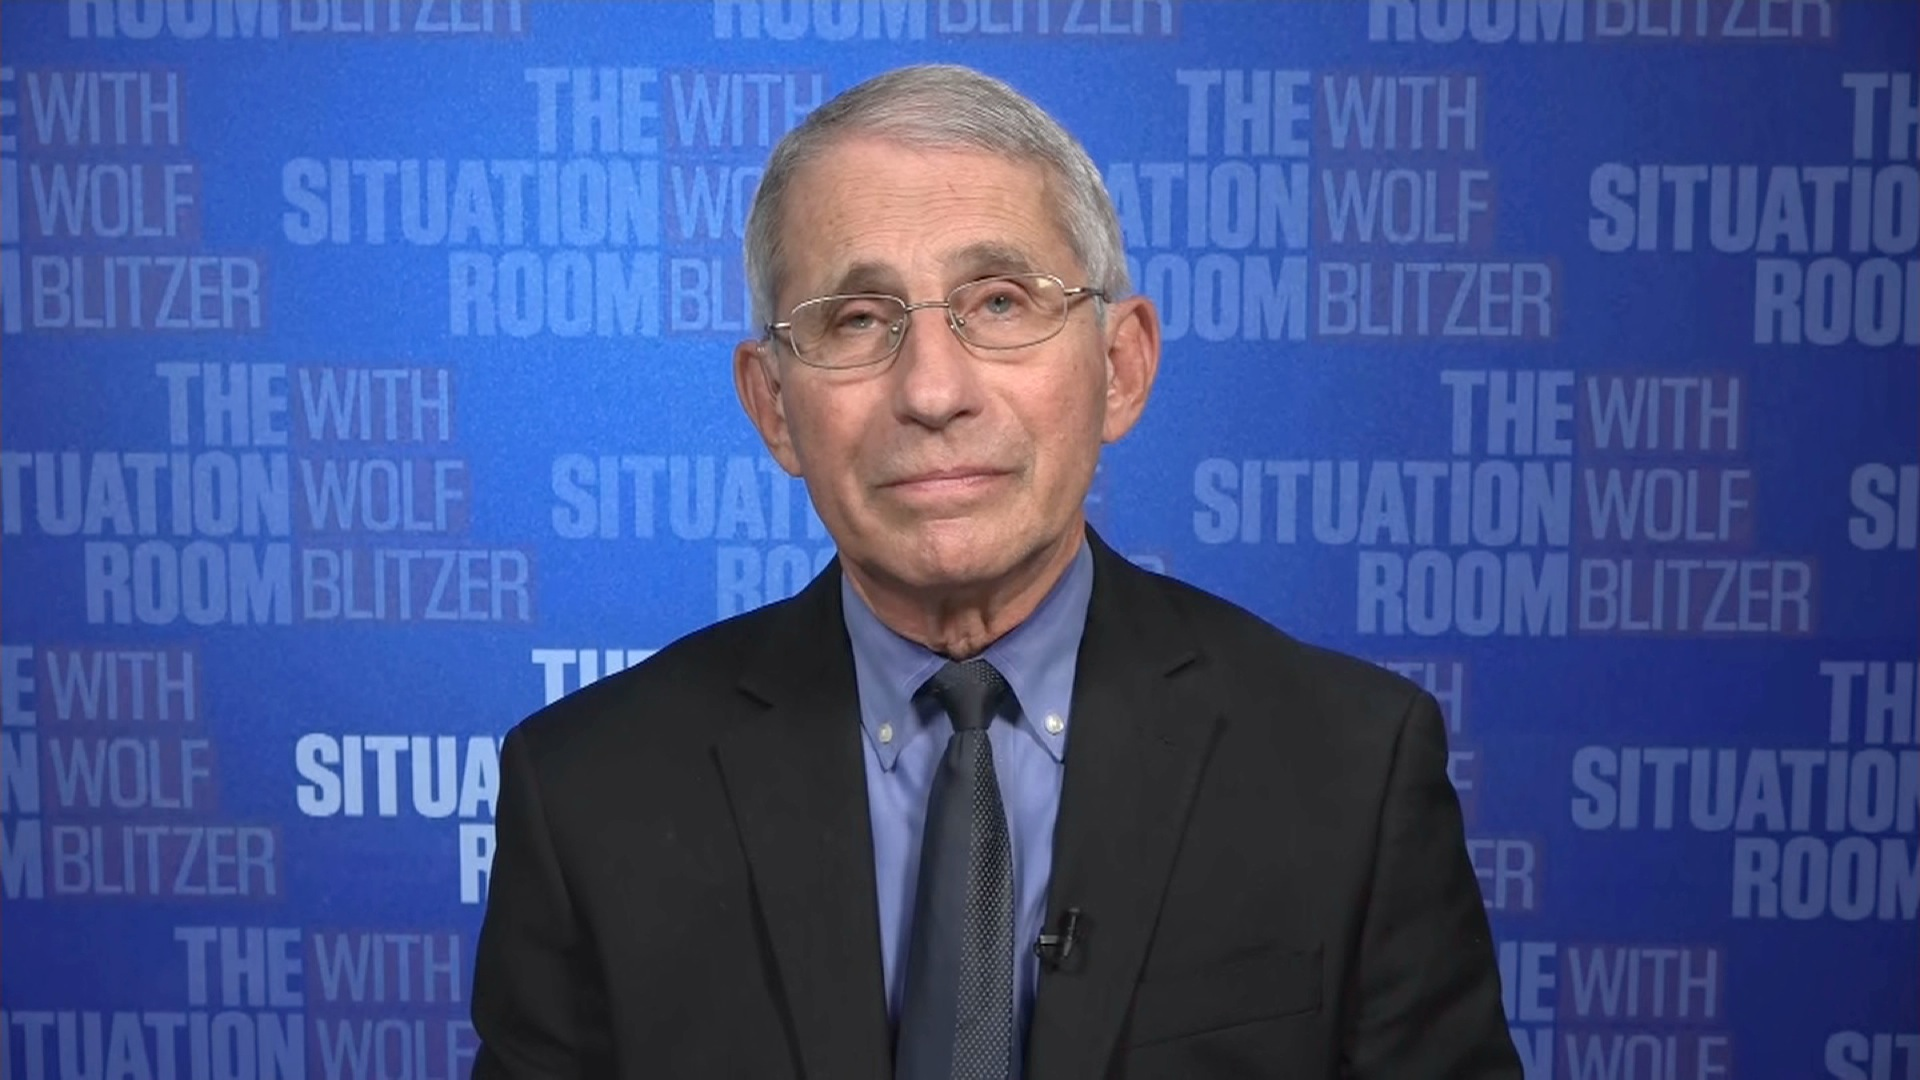 Dr. Anthony Fauci speaks with CNN on Friday, September 4.